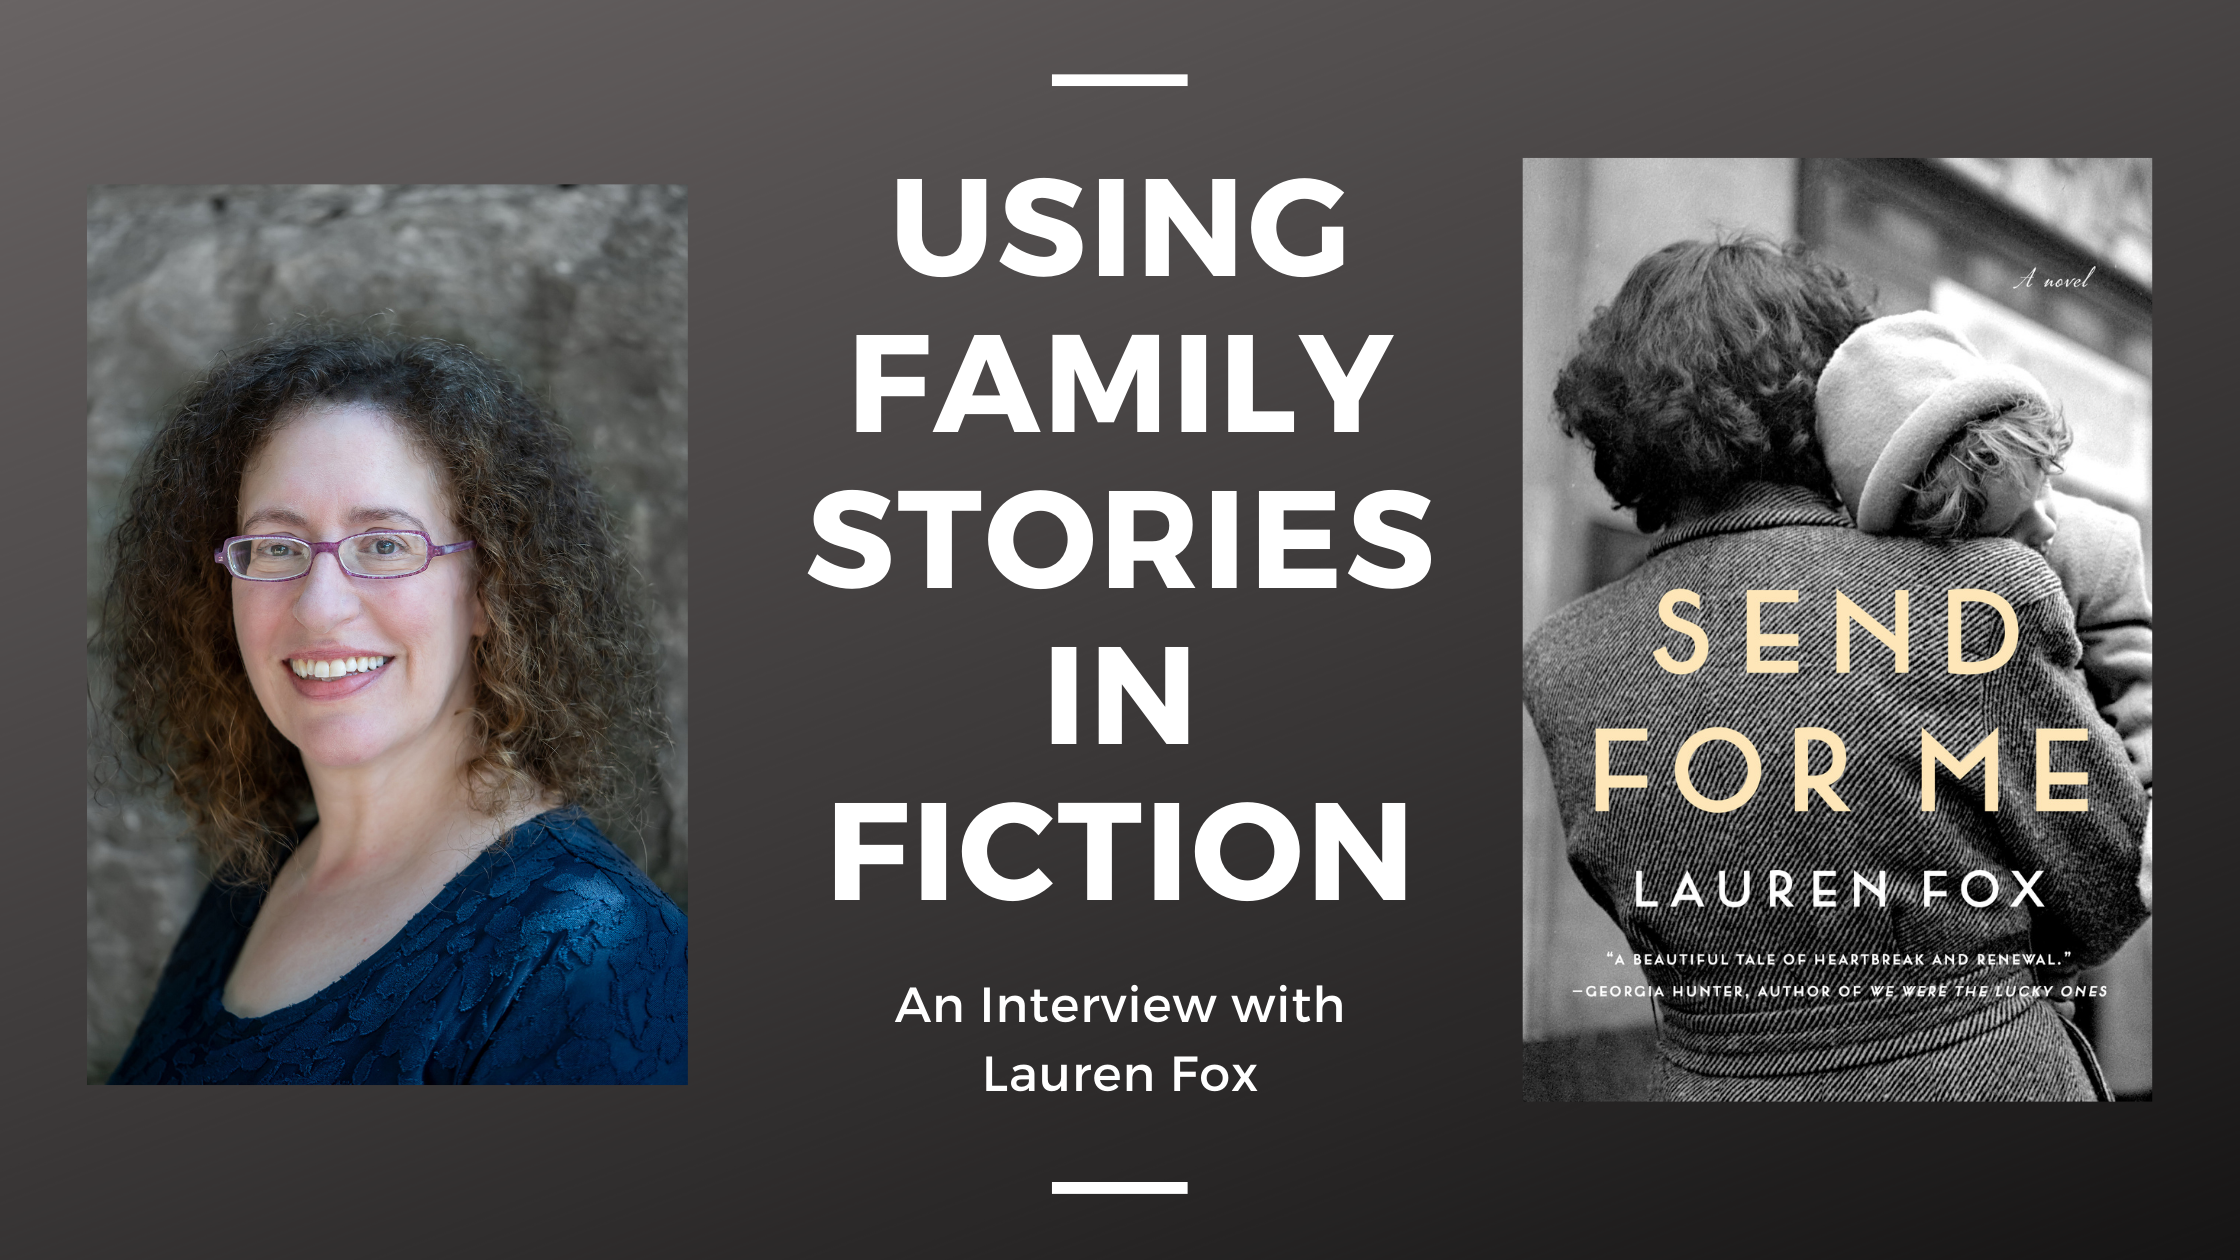 Family Stories in Fiction